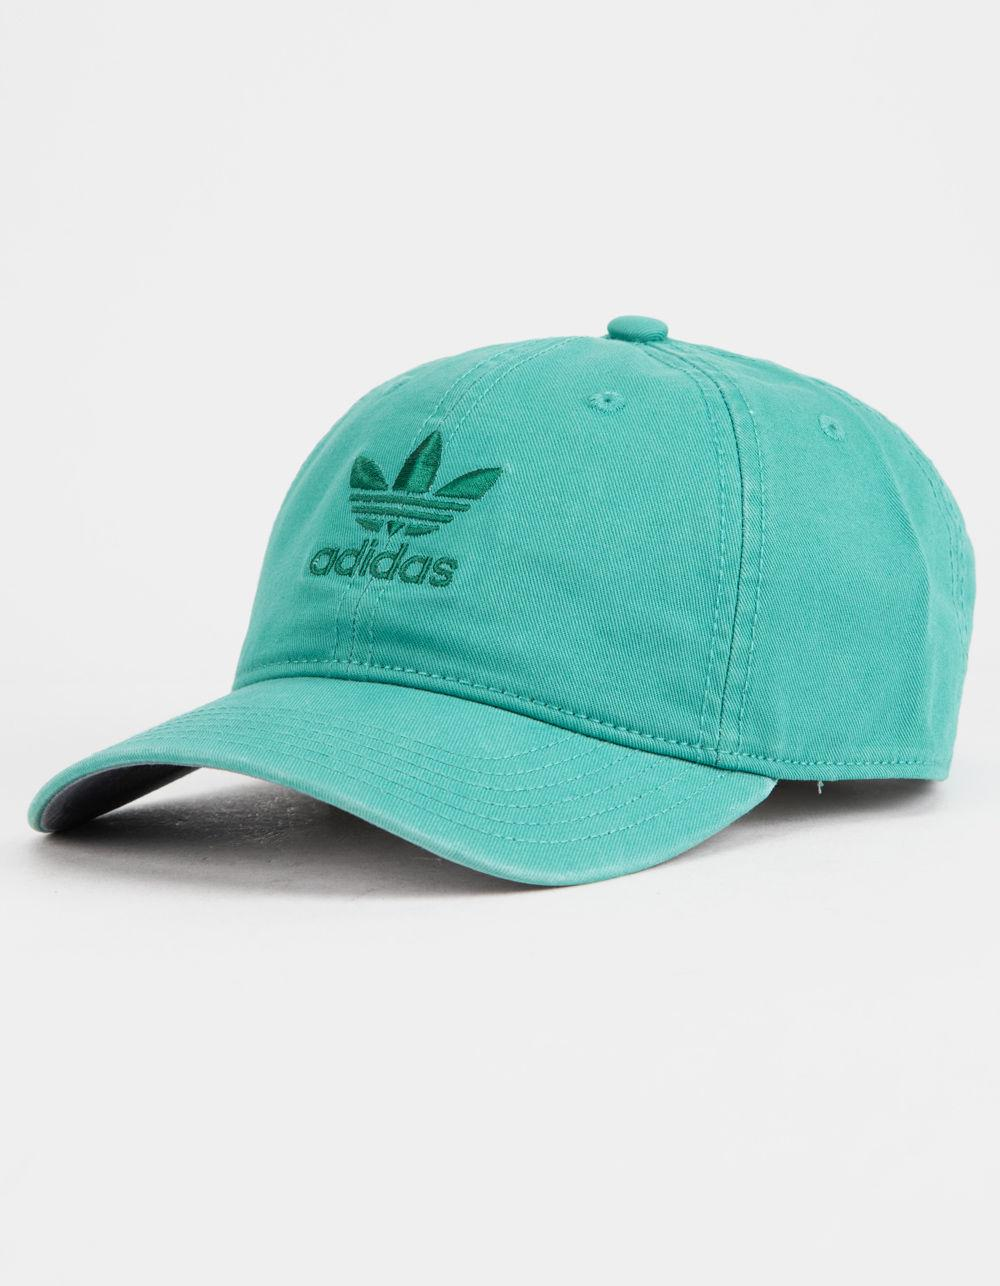 627de2c44b2 Adidas - Originals Relaxed True Green Mens Strapback Hat for Men - Lyst.  View fullscreen